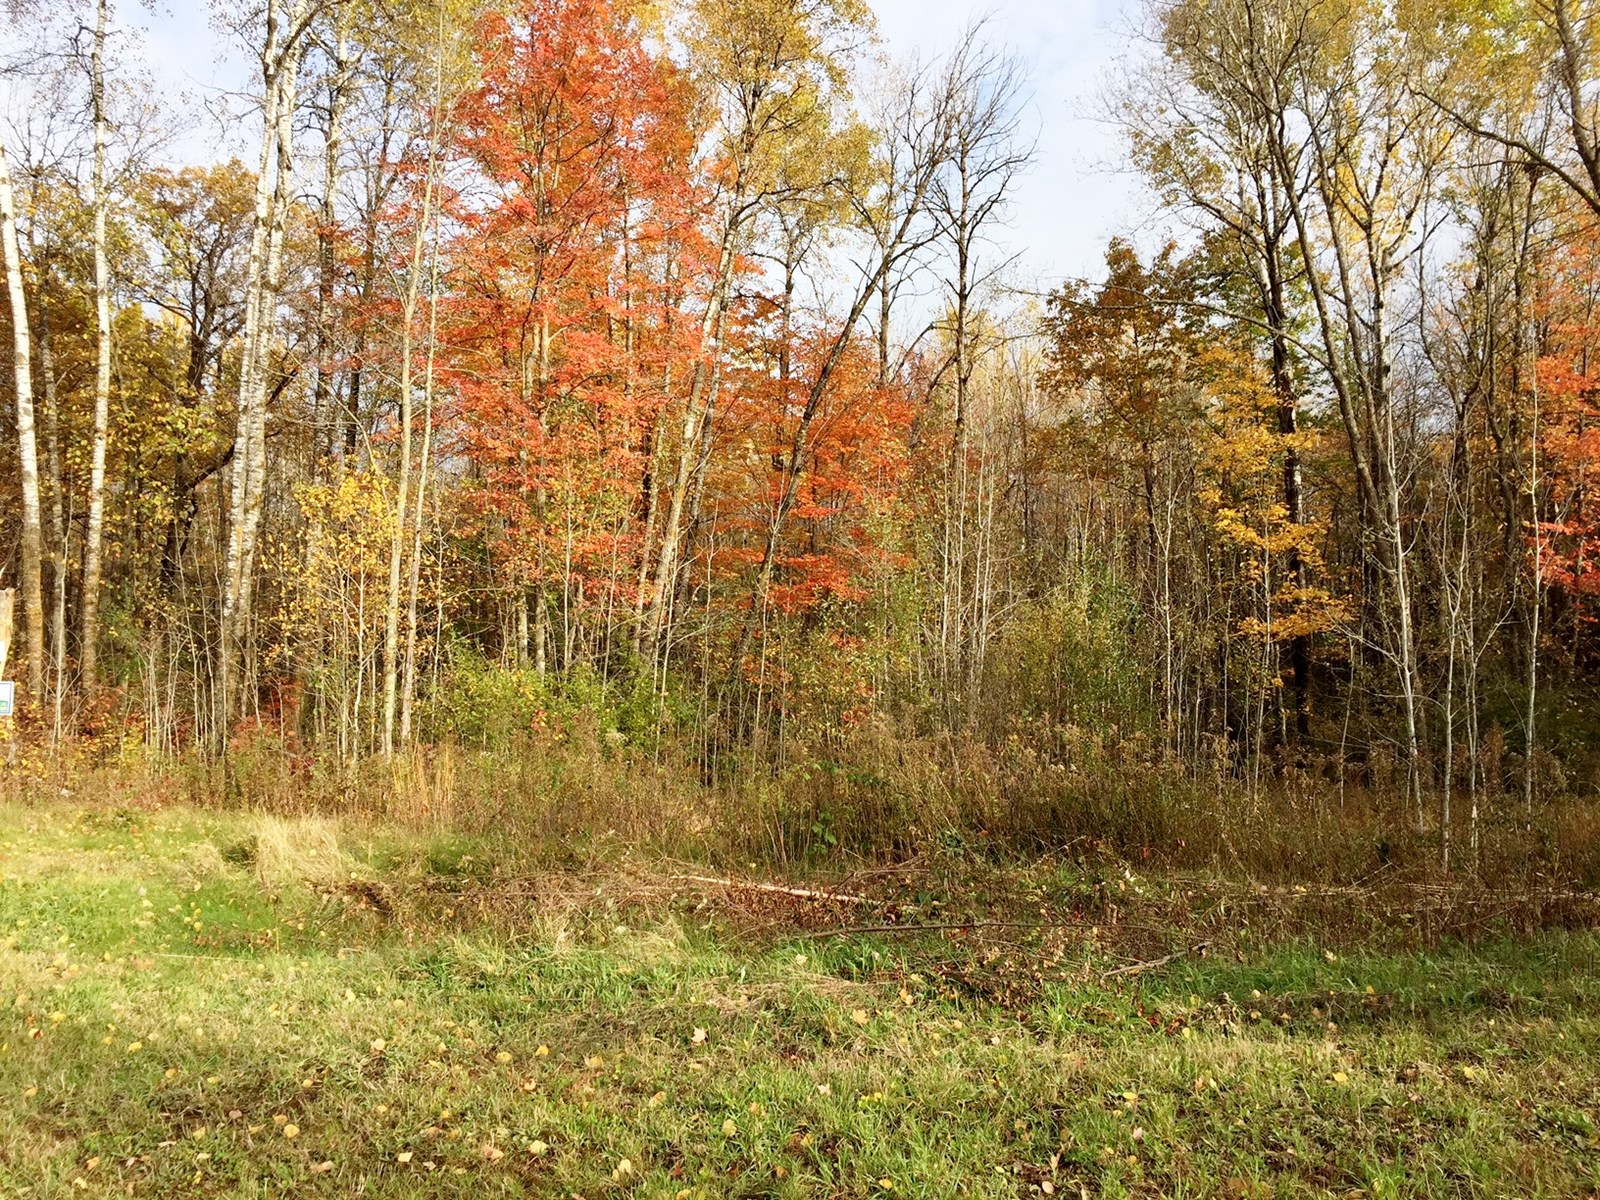 2 Acre Buildable Lot in Minnesota Subdivision, Sandstone MN